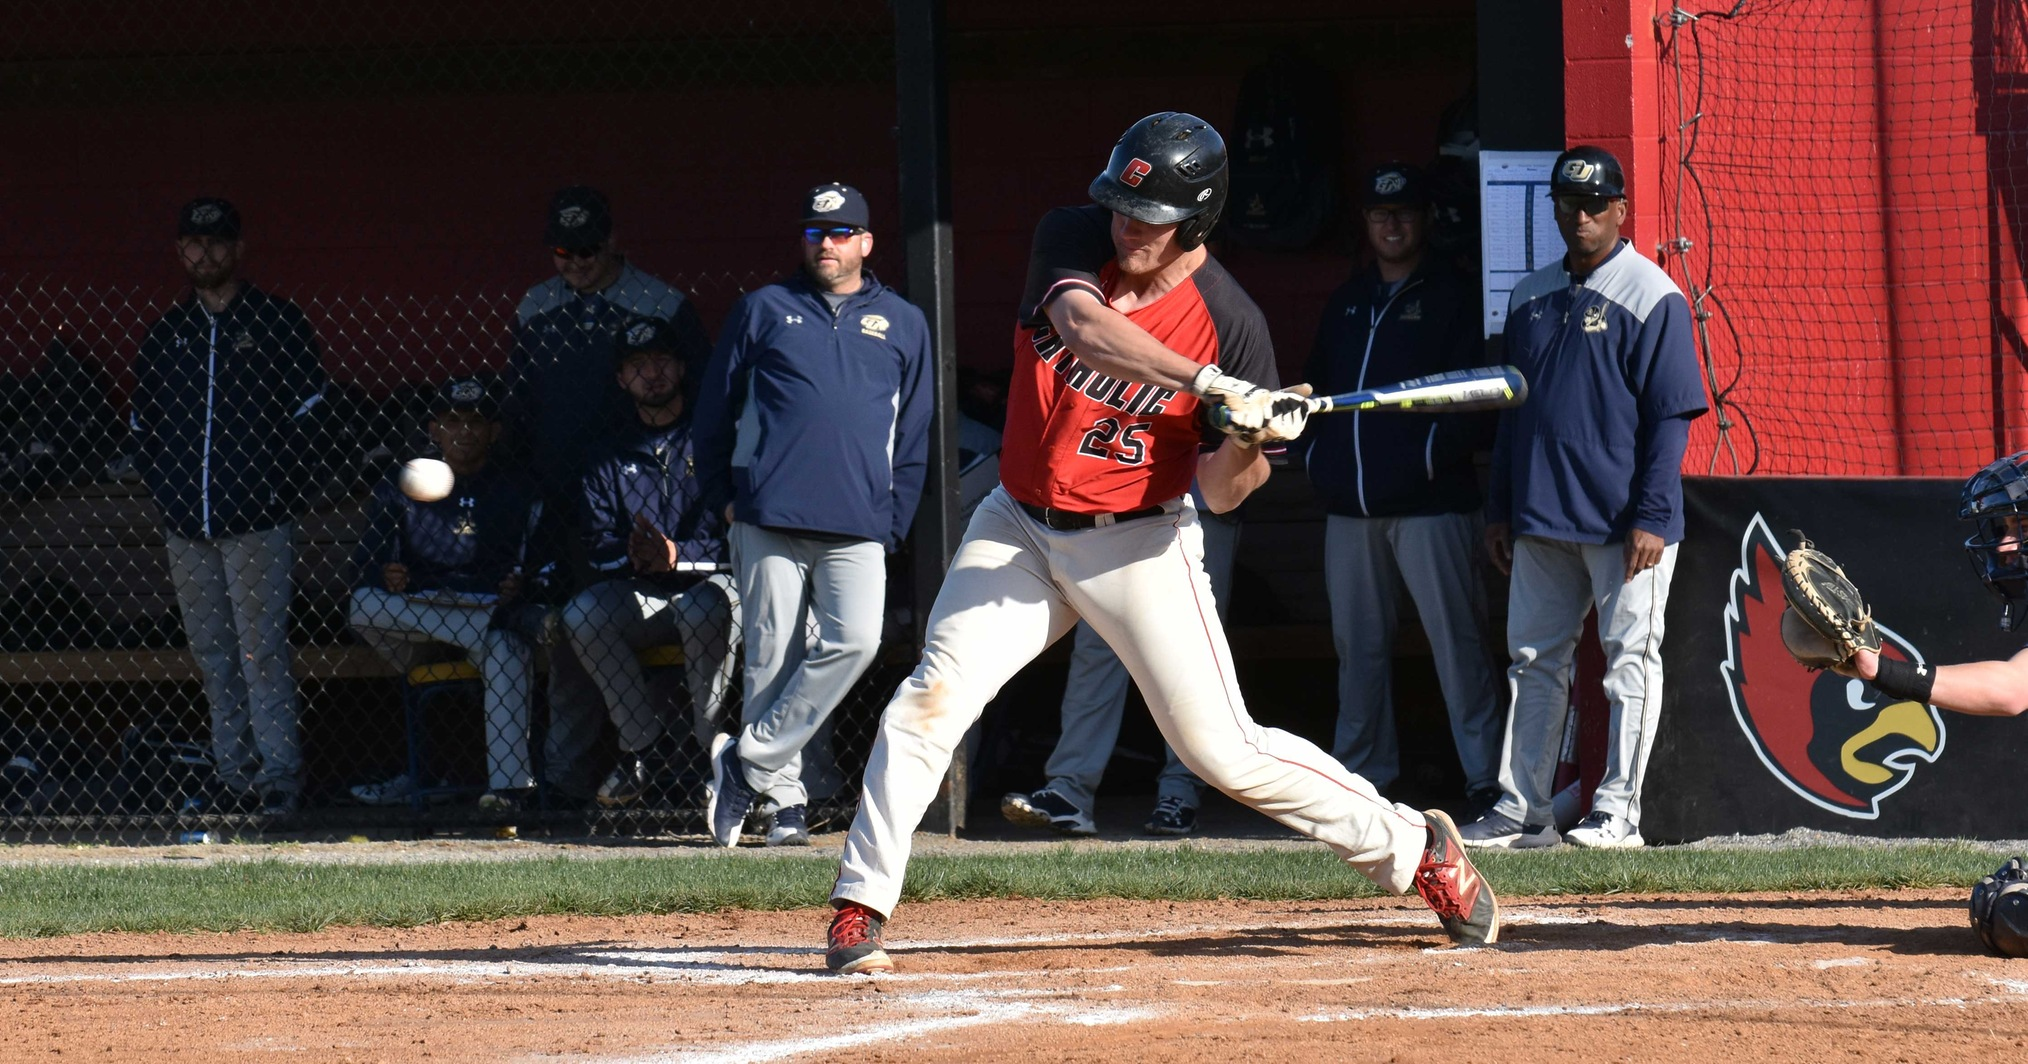 Cotter Hits Two Homers as Cardinals Fall to Blazers, 11-10